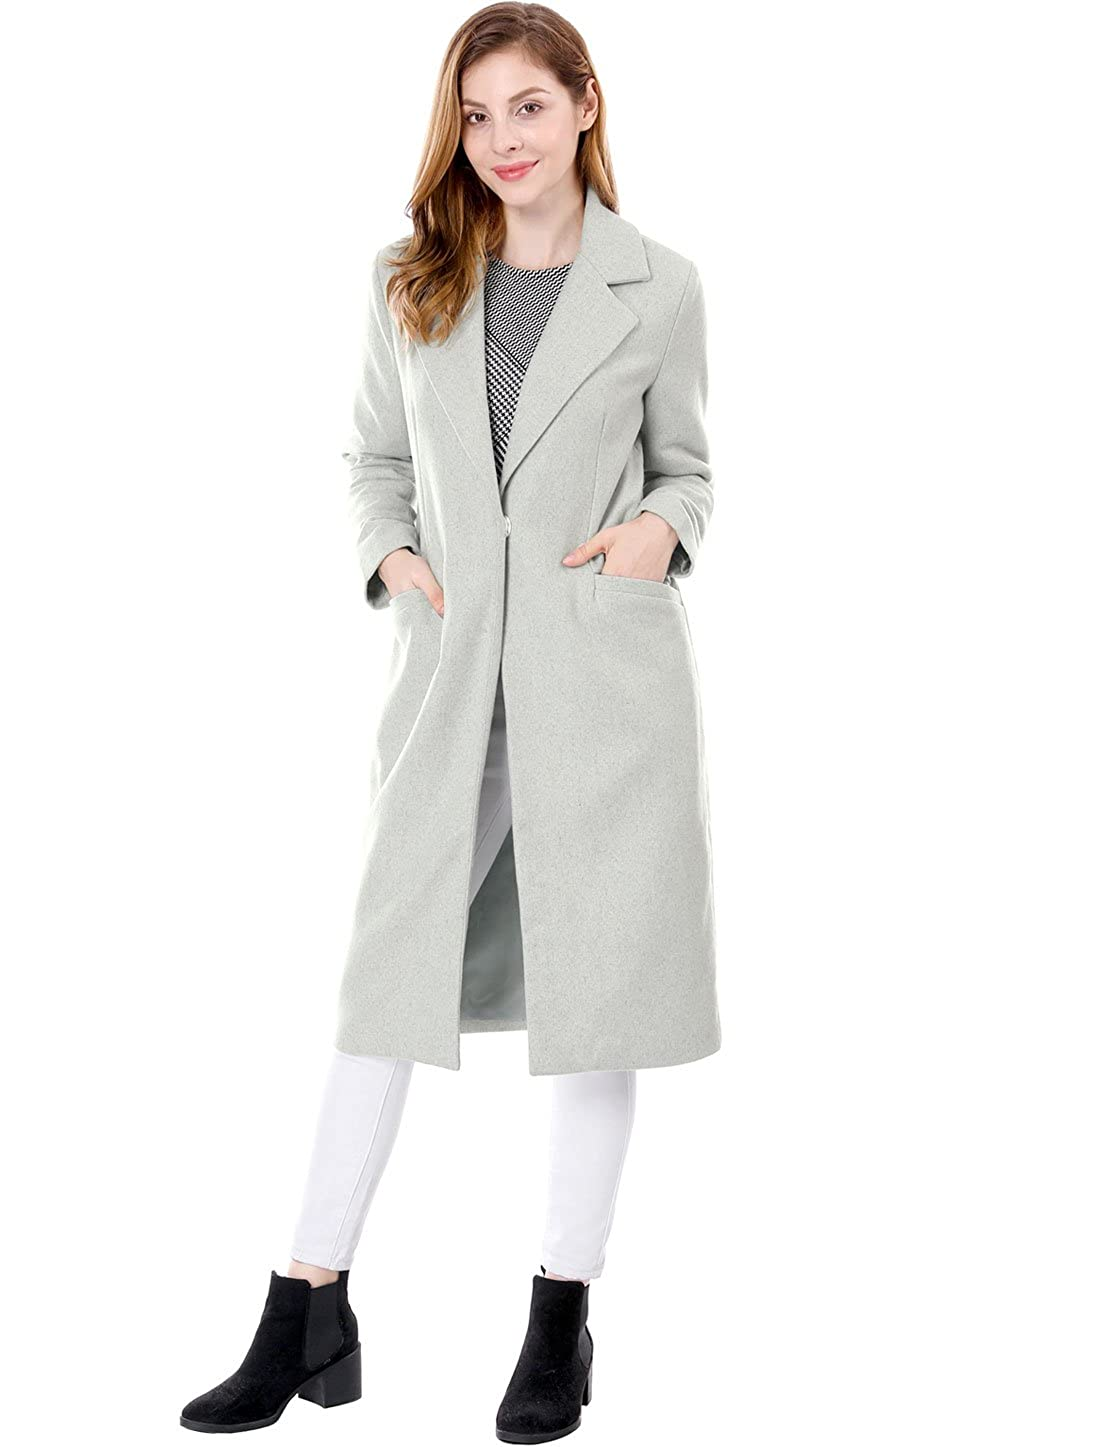 Allegra K Women's Notched Lapel One Button Winter Blend Worsted Long Coat